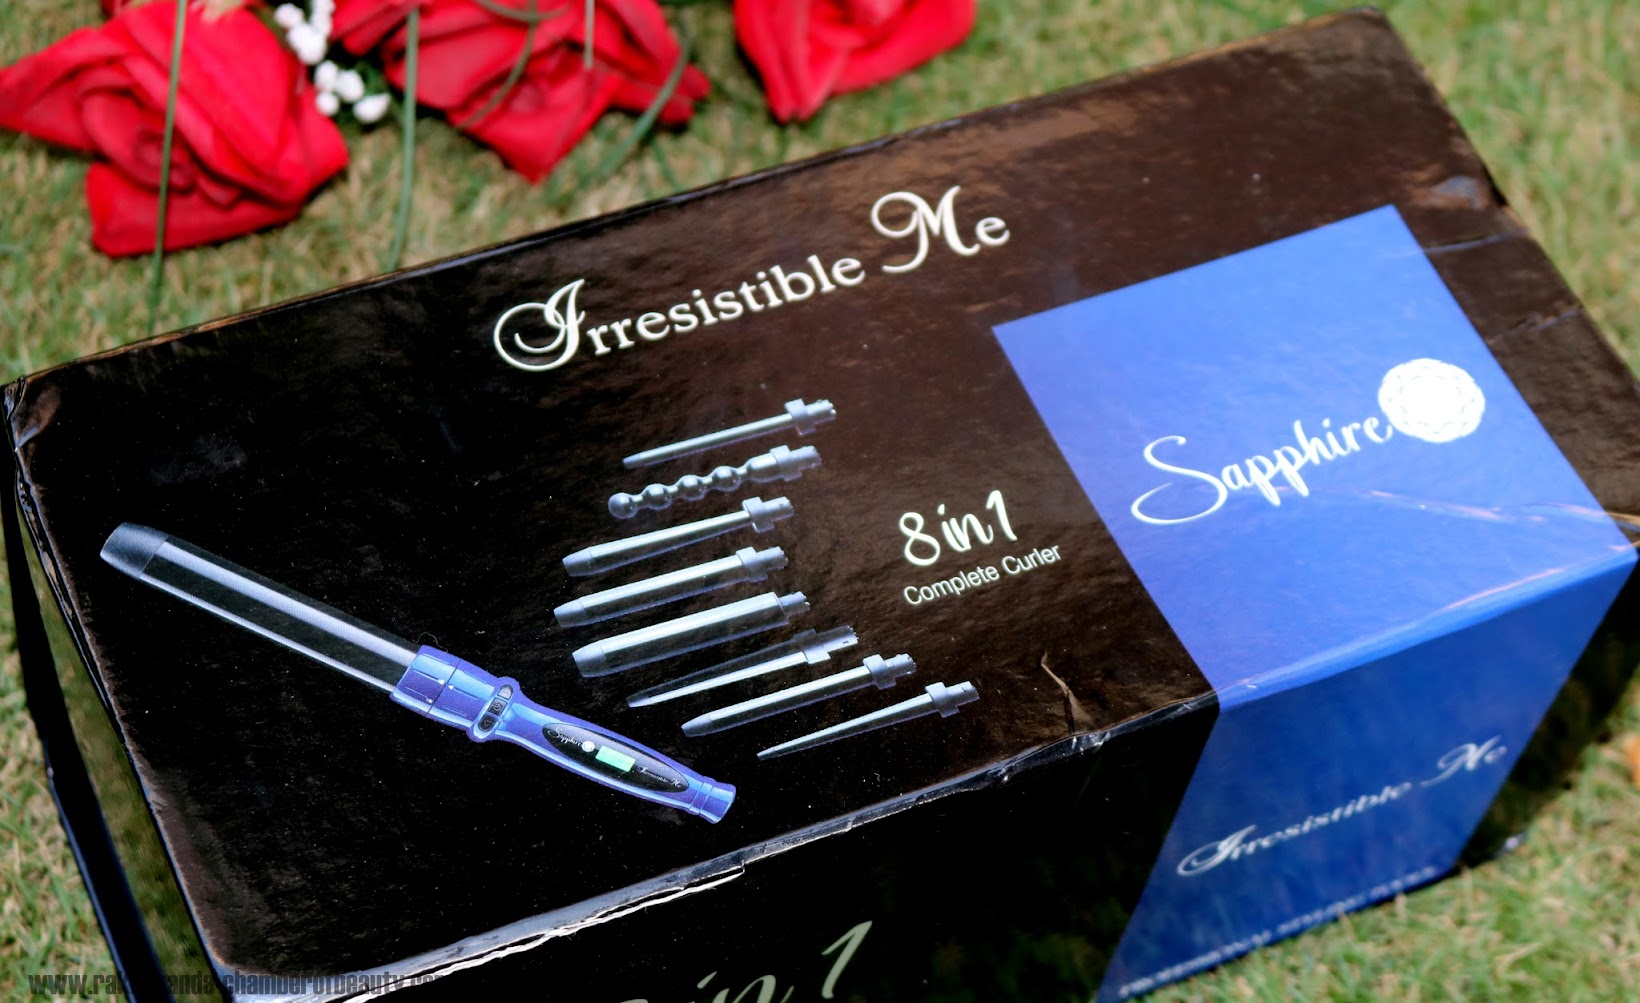 Irresistible Me Sapphire 8 in 1 complete curler- review